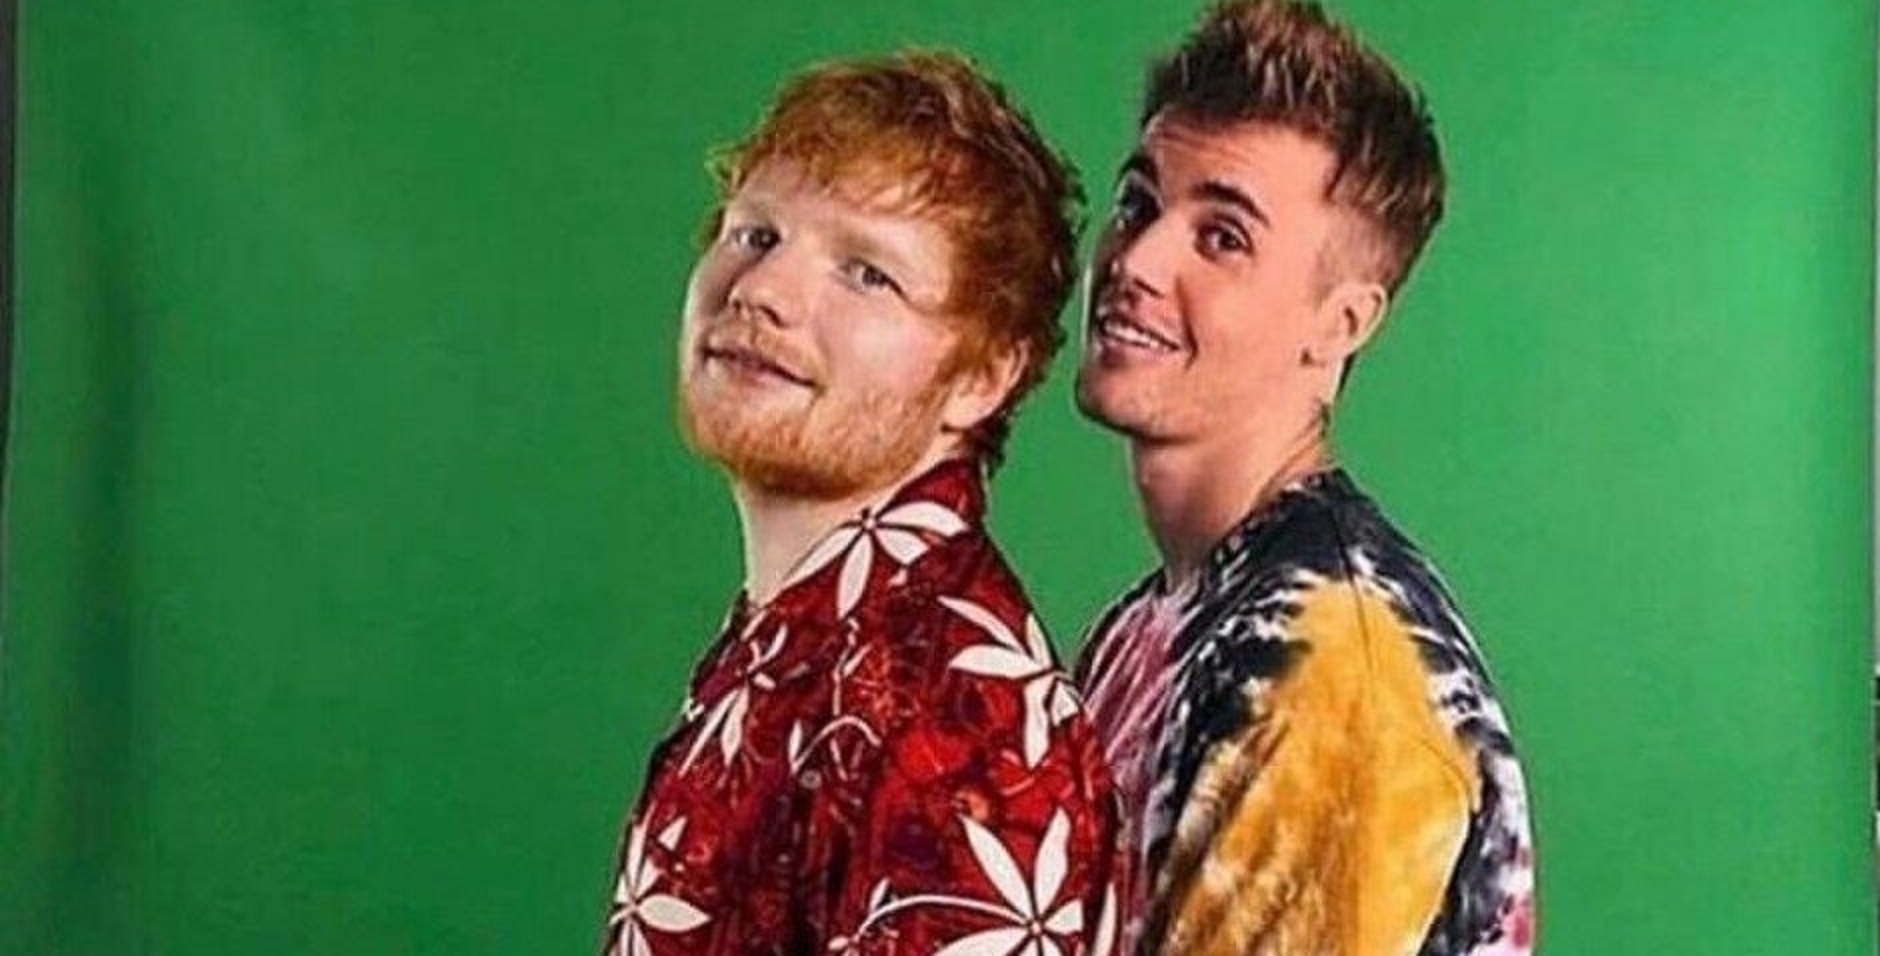 Justin Bieber And Ed Sheeran S New Single I Don T Care Breaks